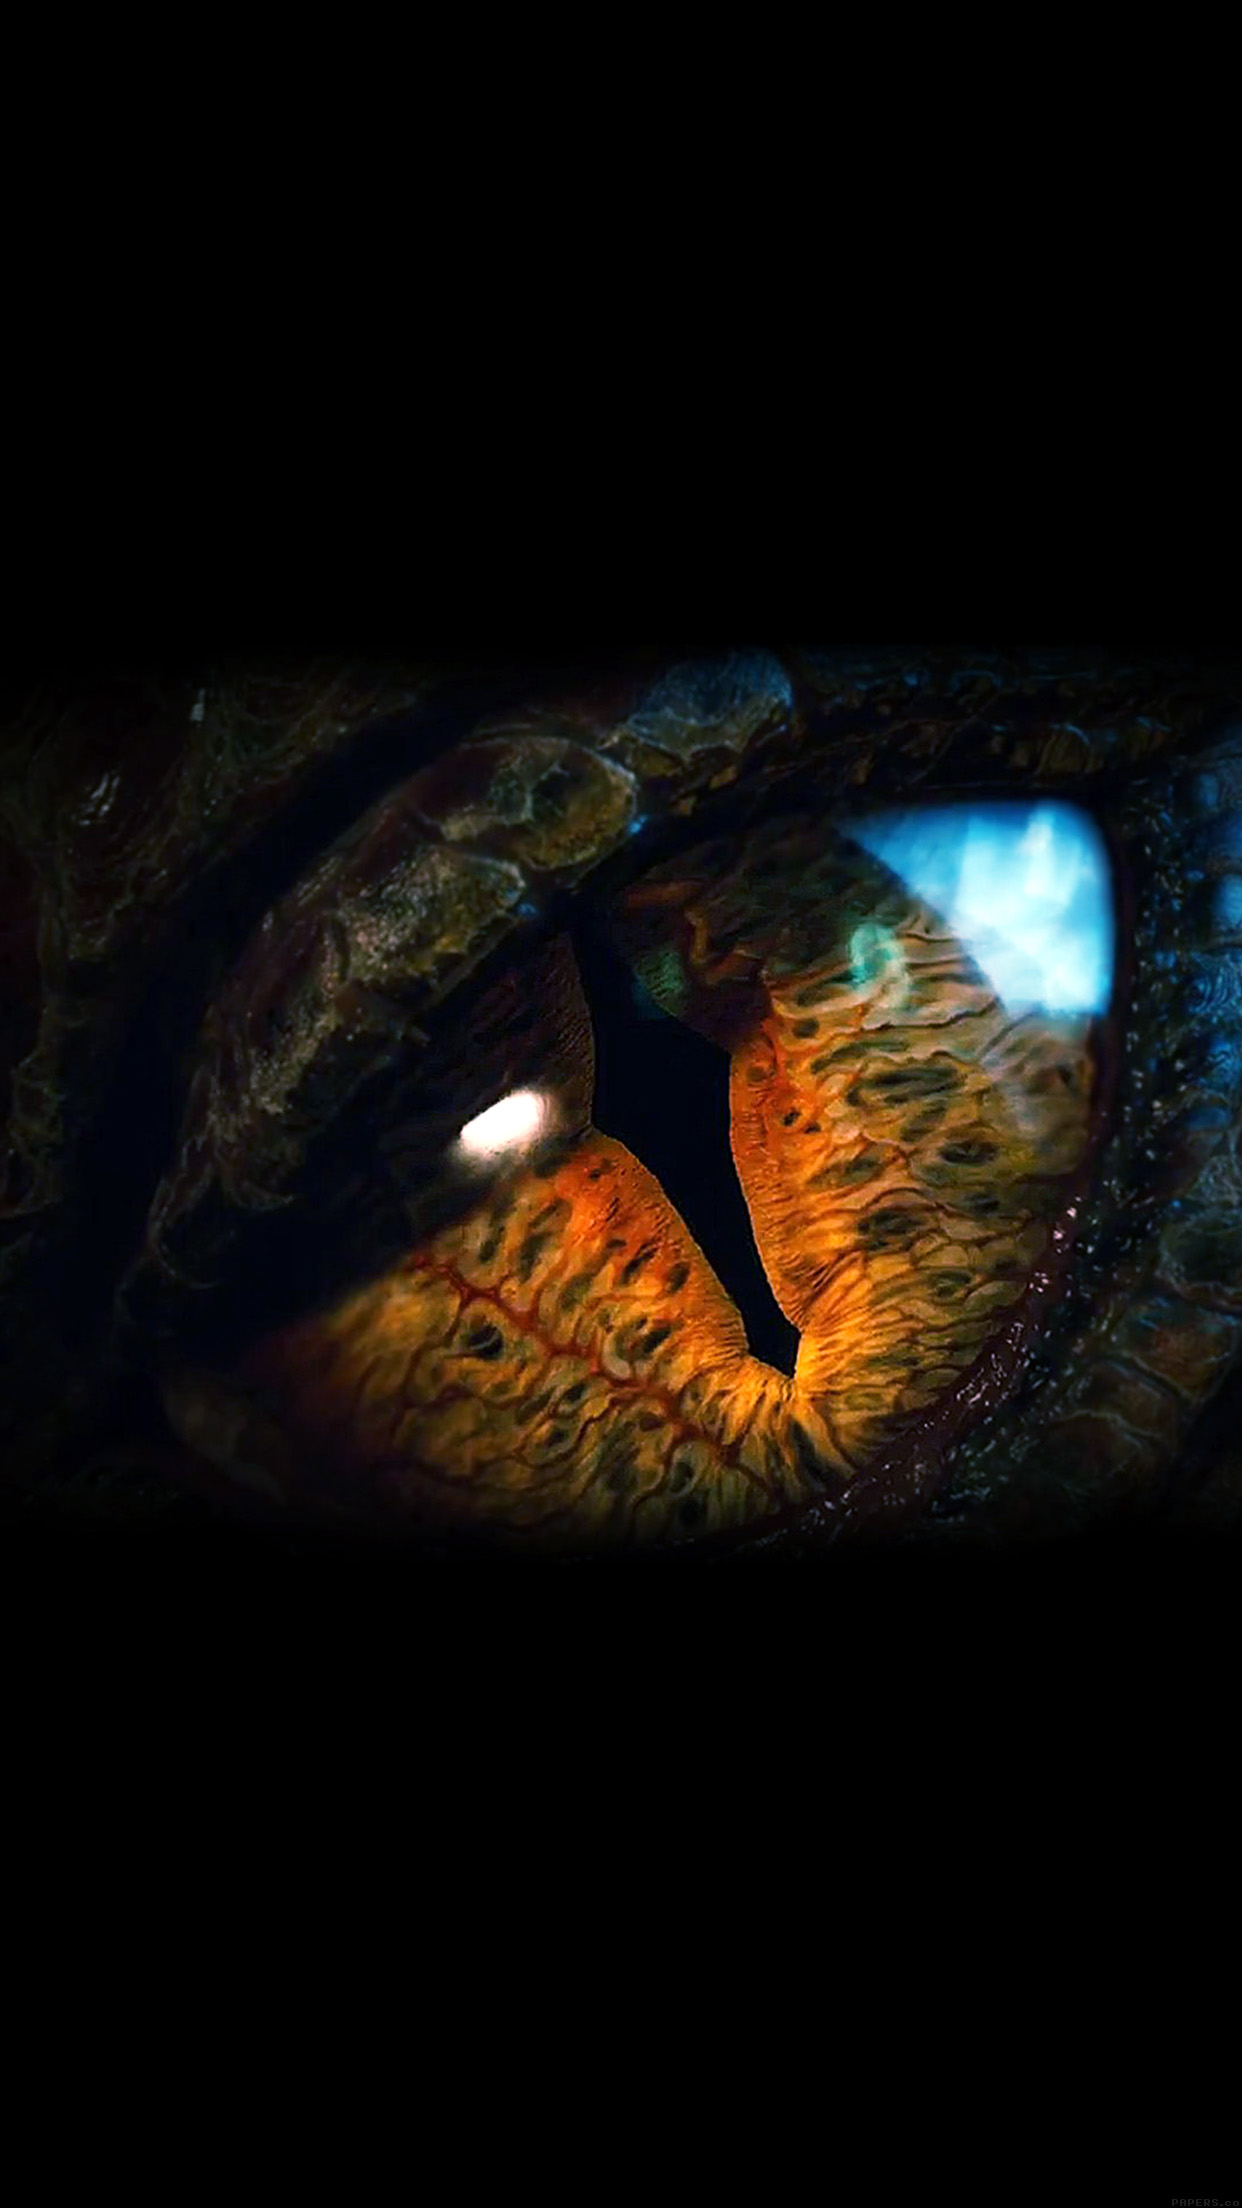 Eye Dragon Film Hobbit The Battle Five Armies Art Dark Android wallpaper